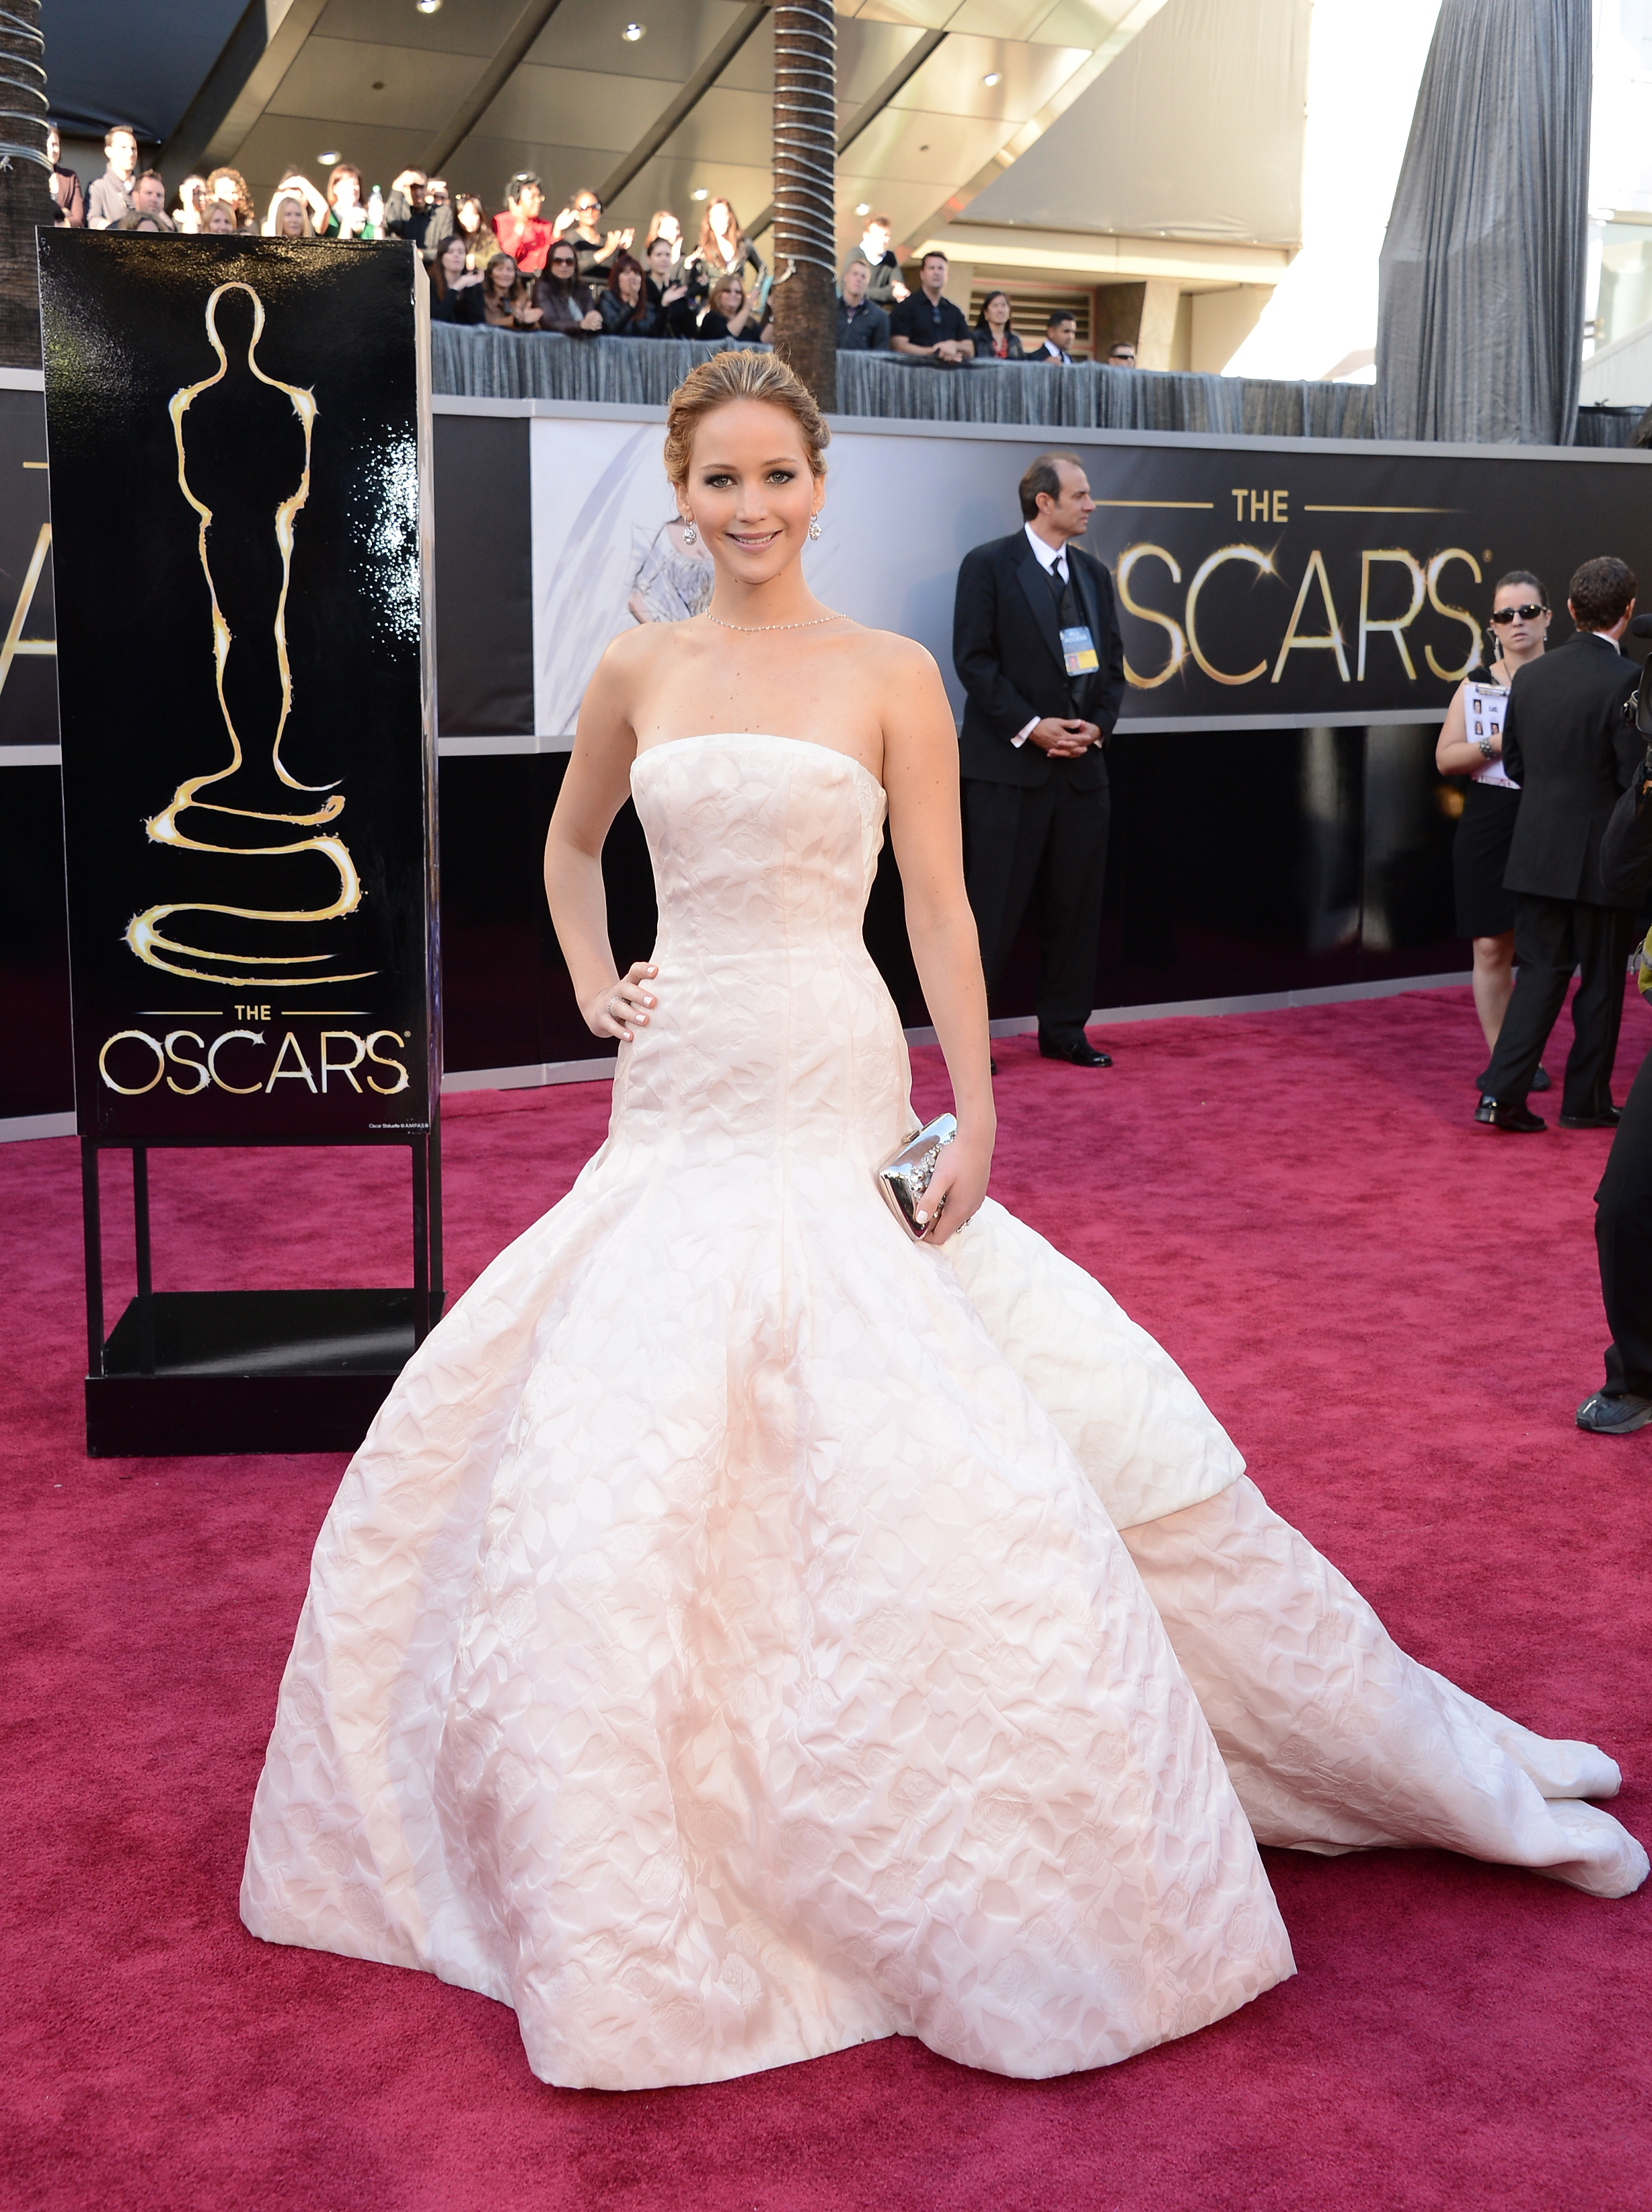 An Image of Jennifer Lawrence at the 2013 Oscars